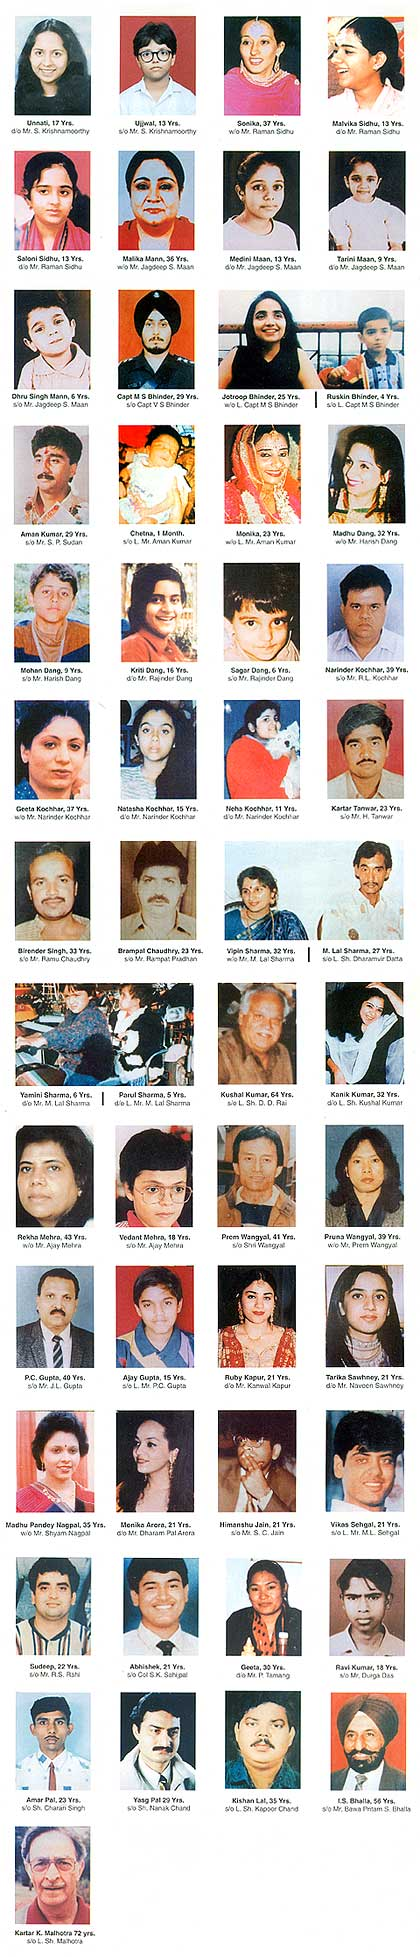 Victims of the Uphaar tragedy